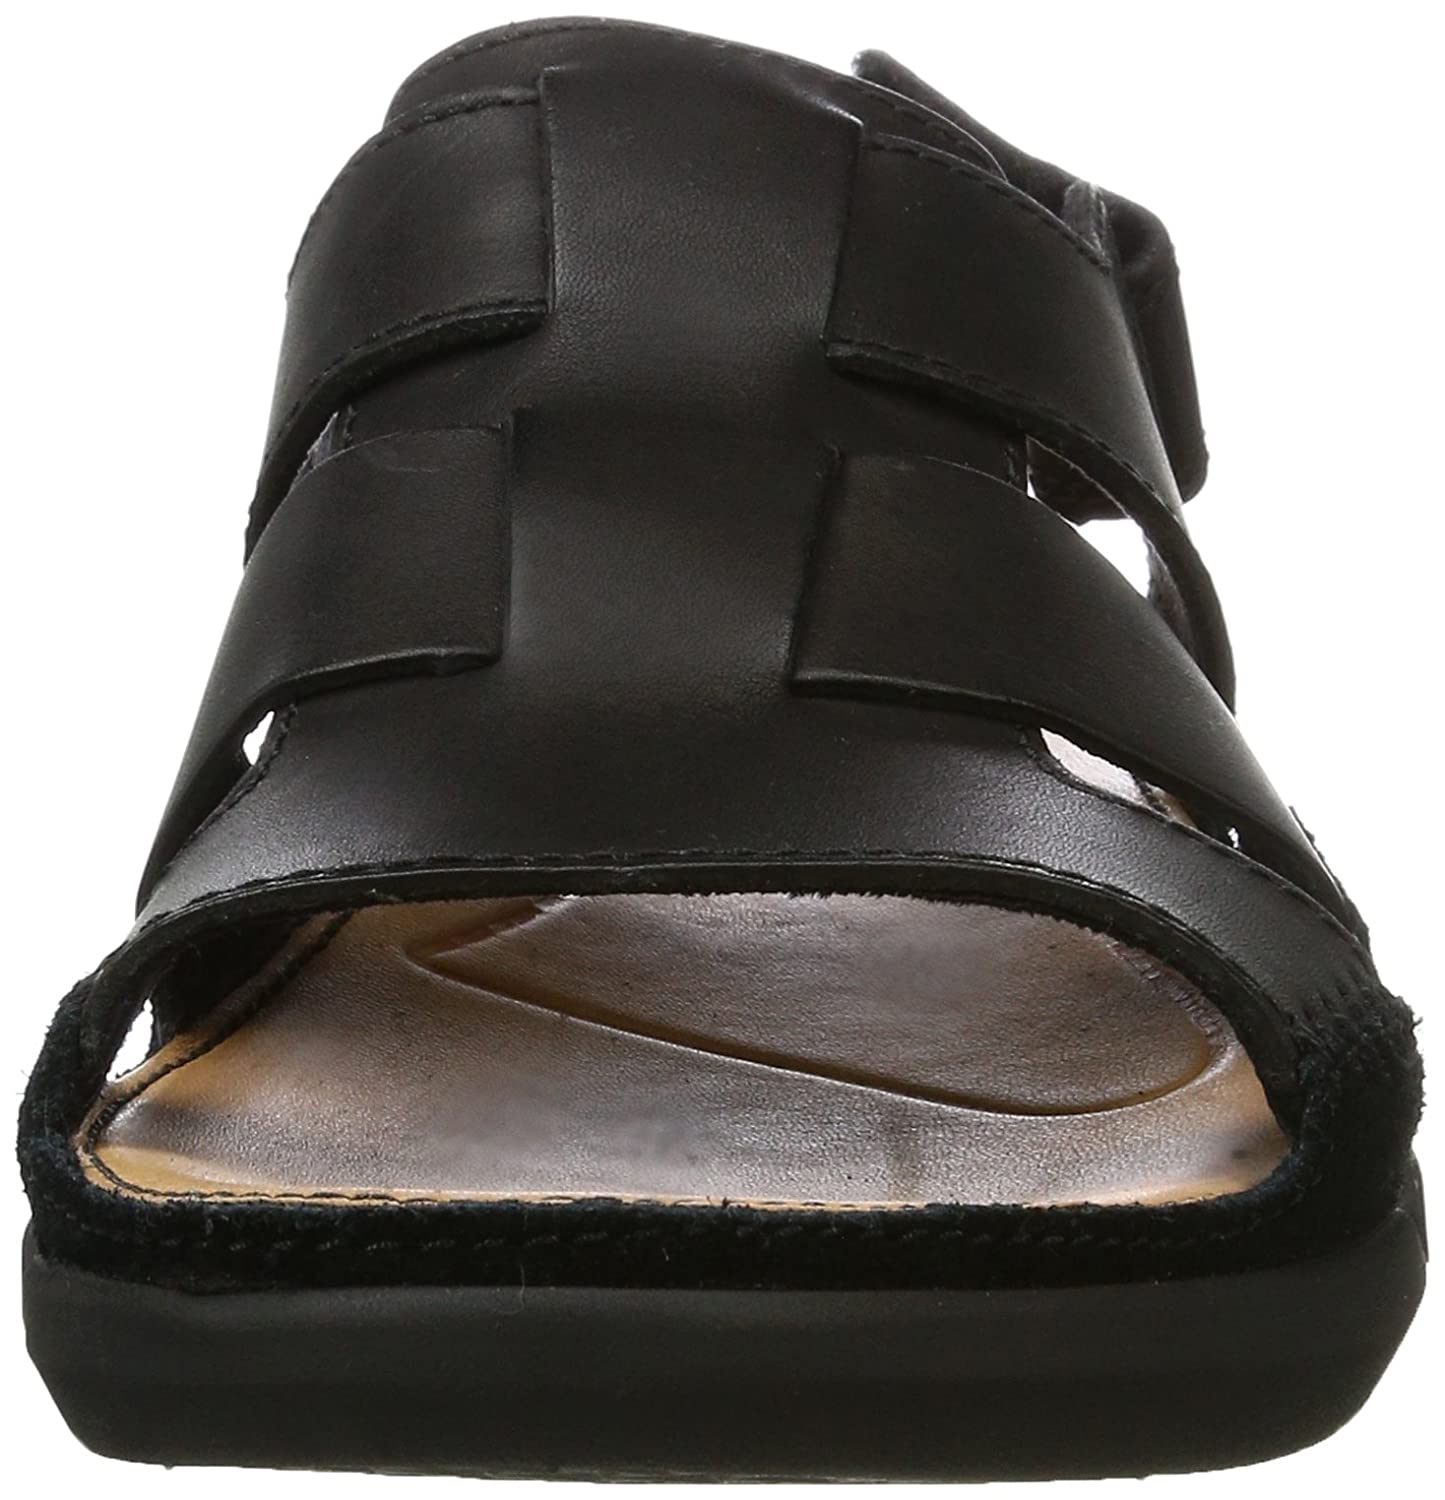 730d0ab0caff Clarks Men s Trisand Bay Sandals Black  Amazon.co.uk  Shoes   Bags